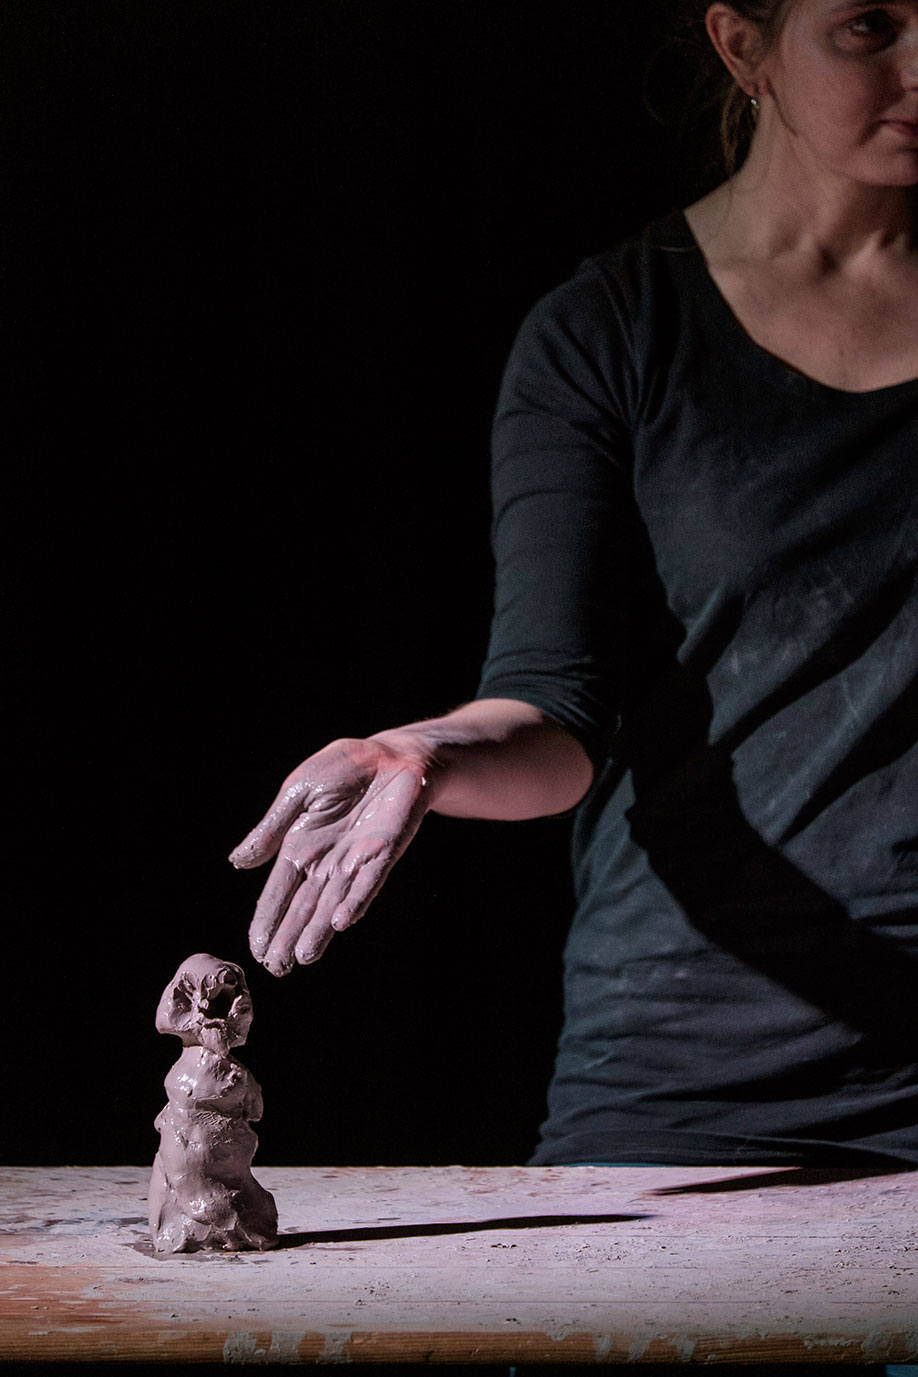 <b>Title:&nbsp;</b>Voicings<br /><b>Year:&nbsp;</b>2015<br /><b>Medium:&nbsp;</b>Performance and sculpture. Materials: Clay and projection. Photo: Christian Kipp<br />